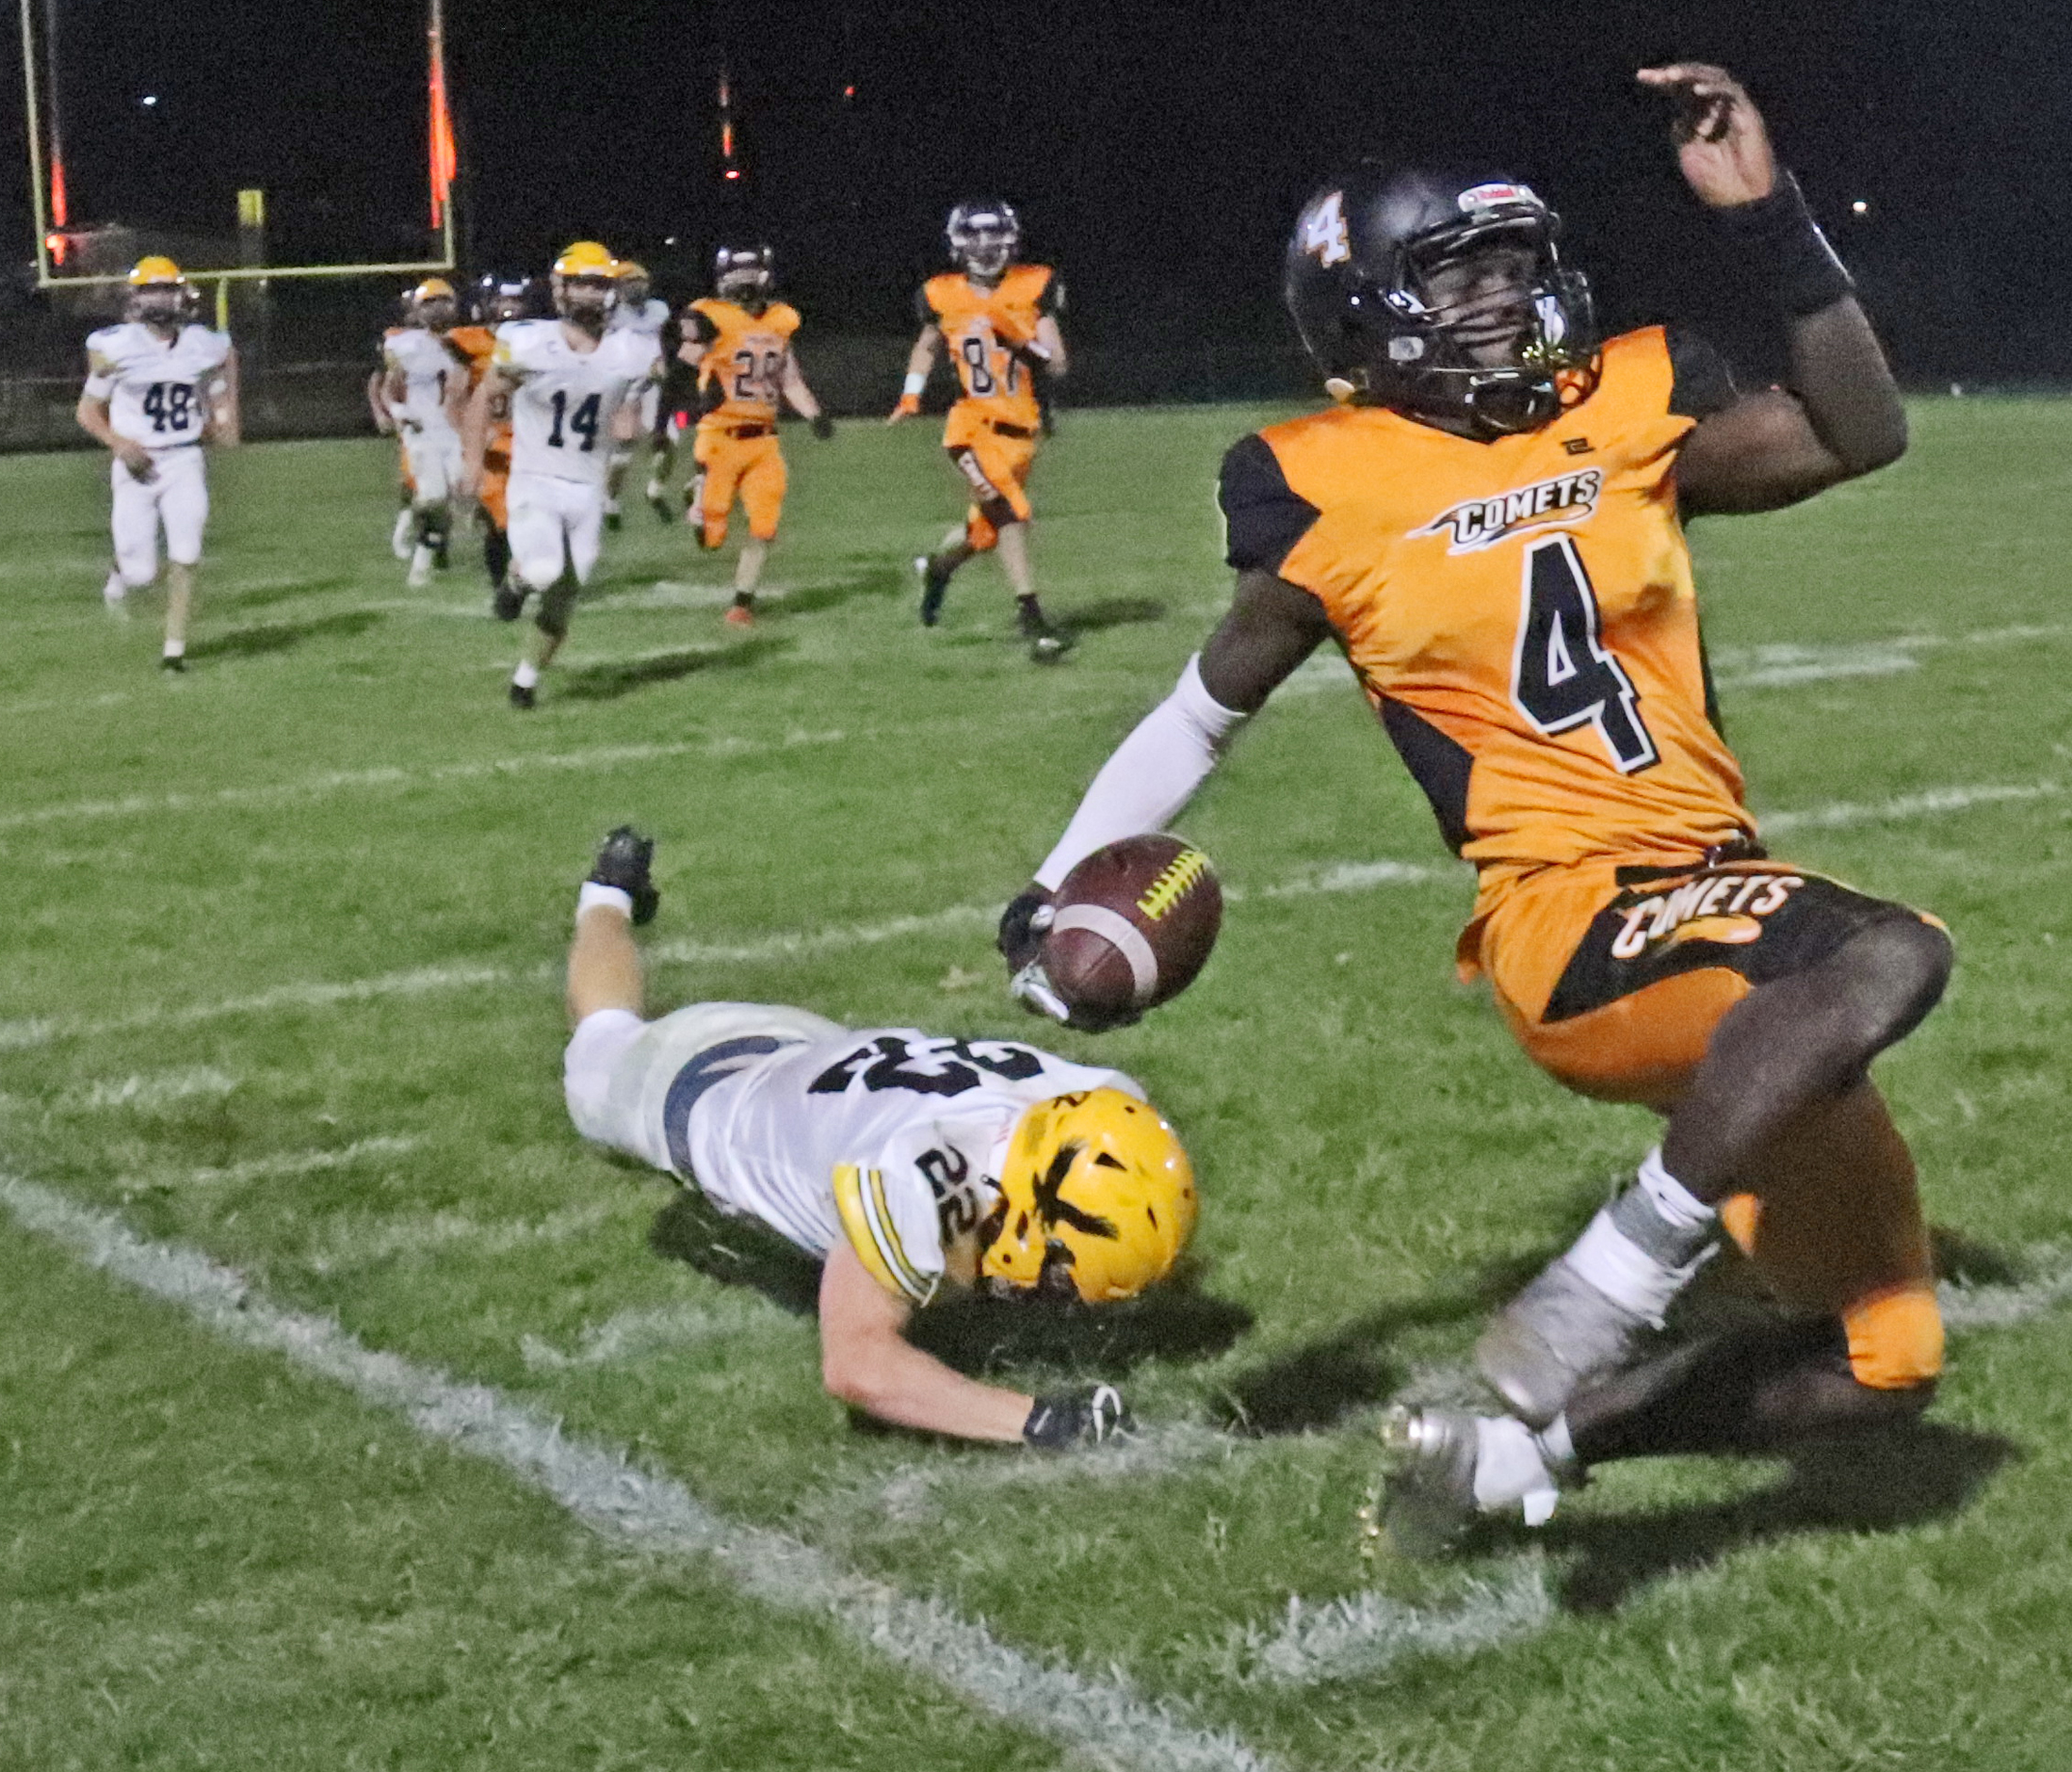 Go Hawks too much for Comets 49-7